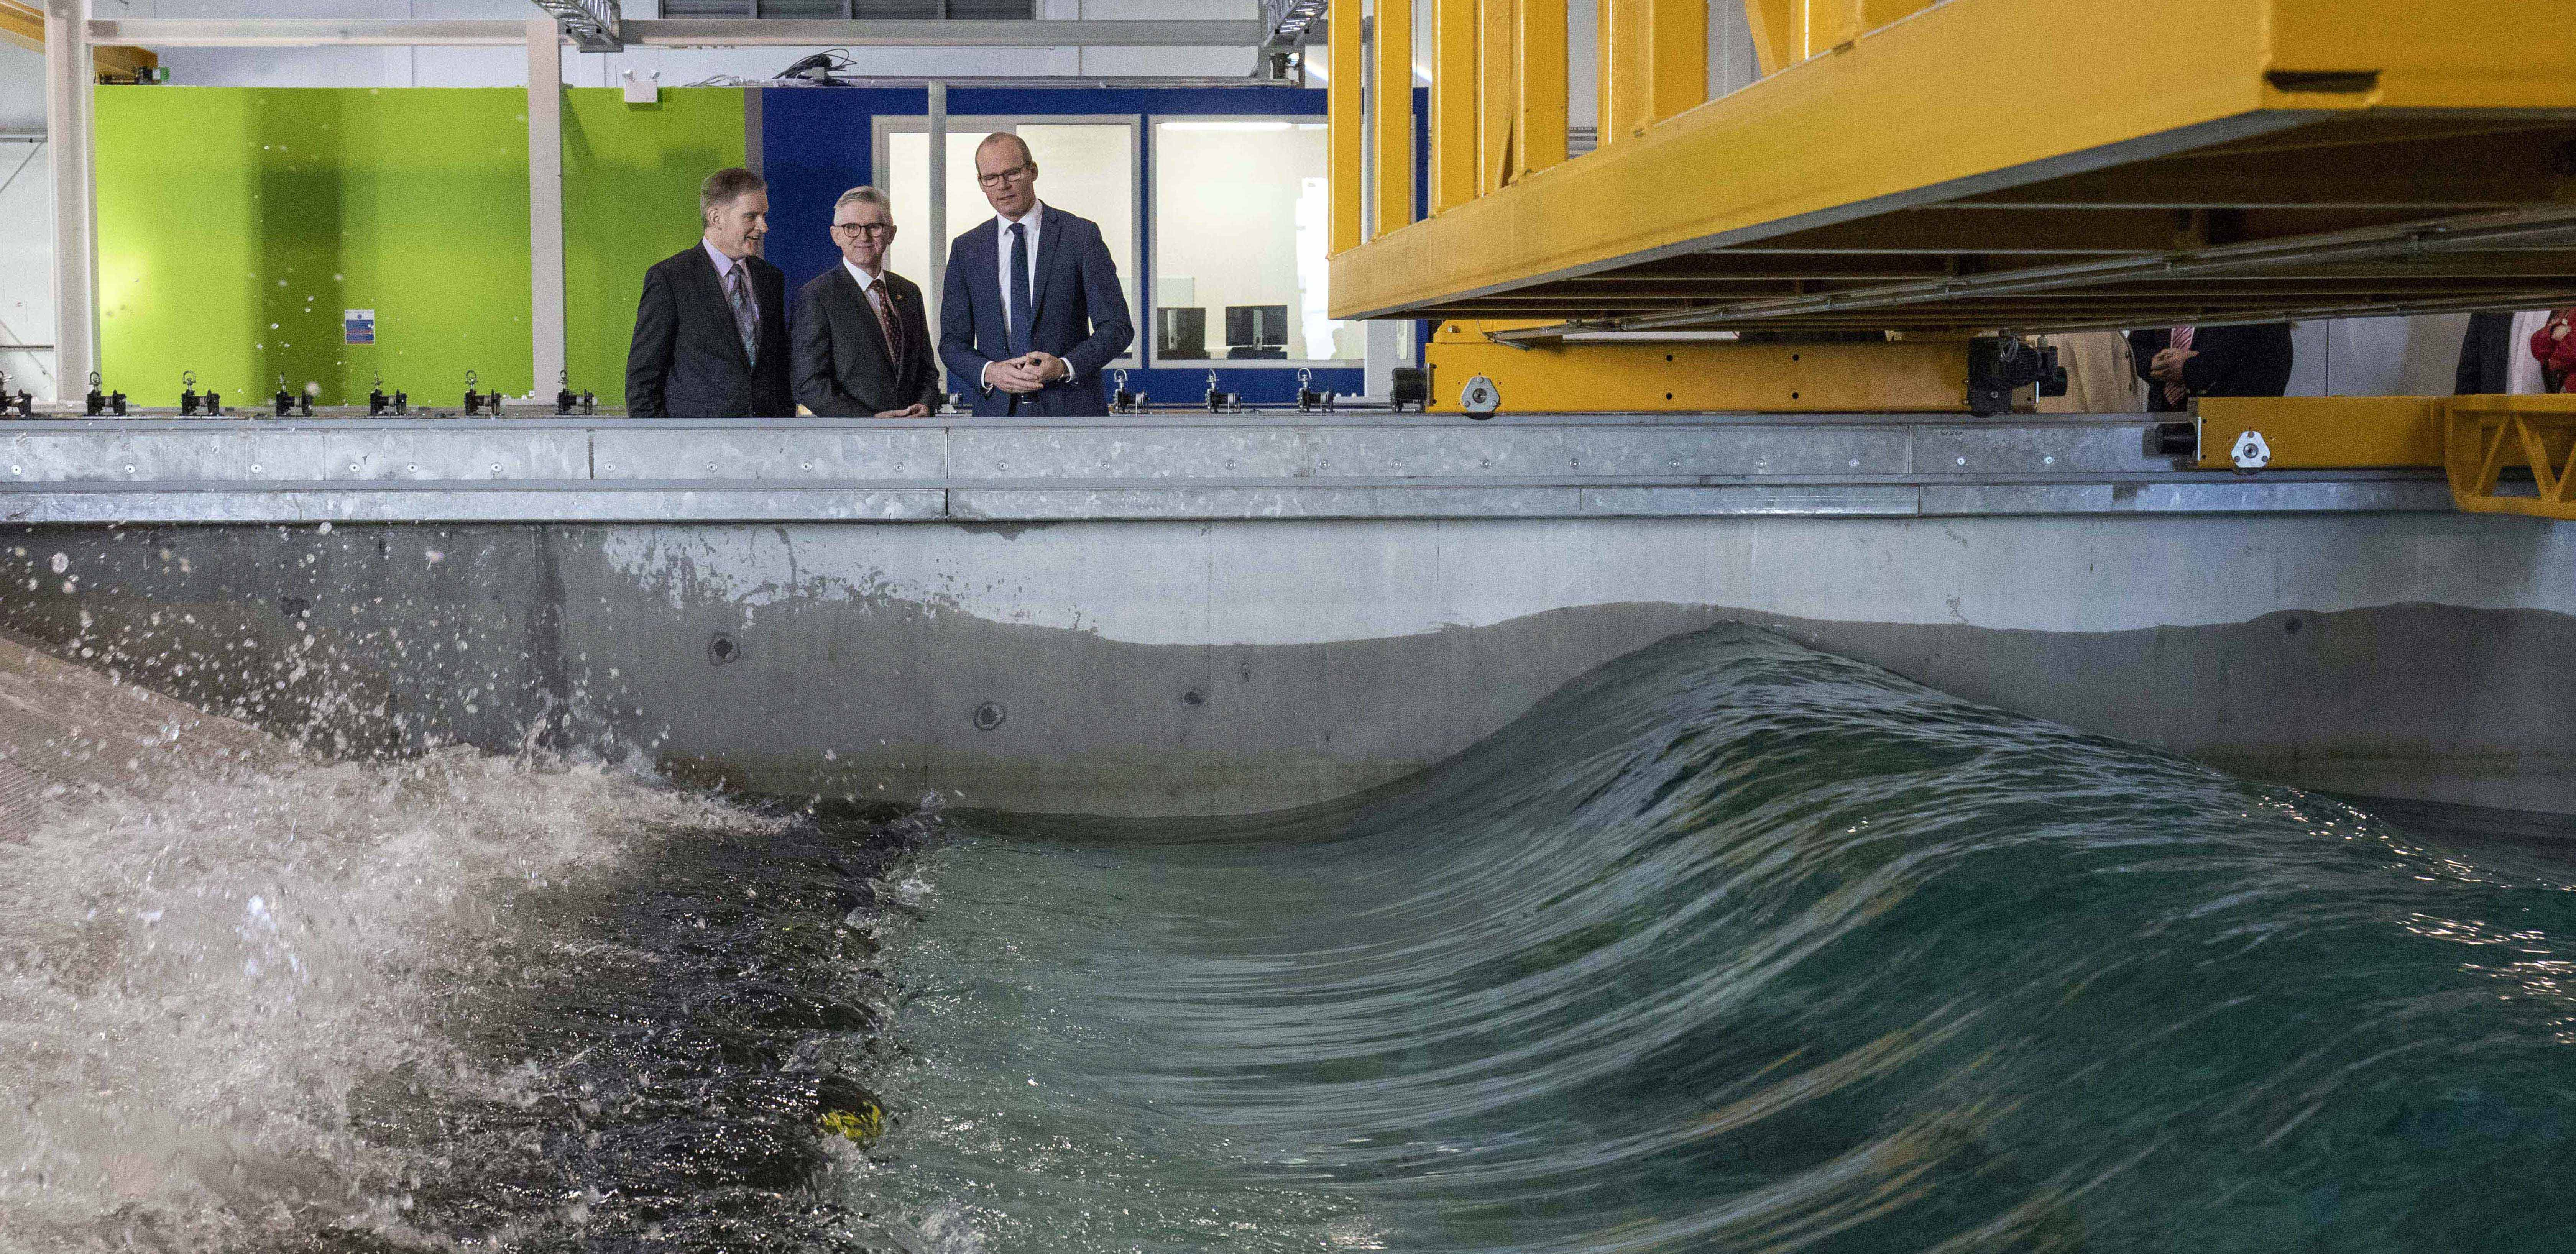 Lir to make waves as world leader in ocean energy